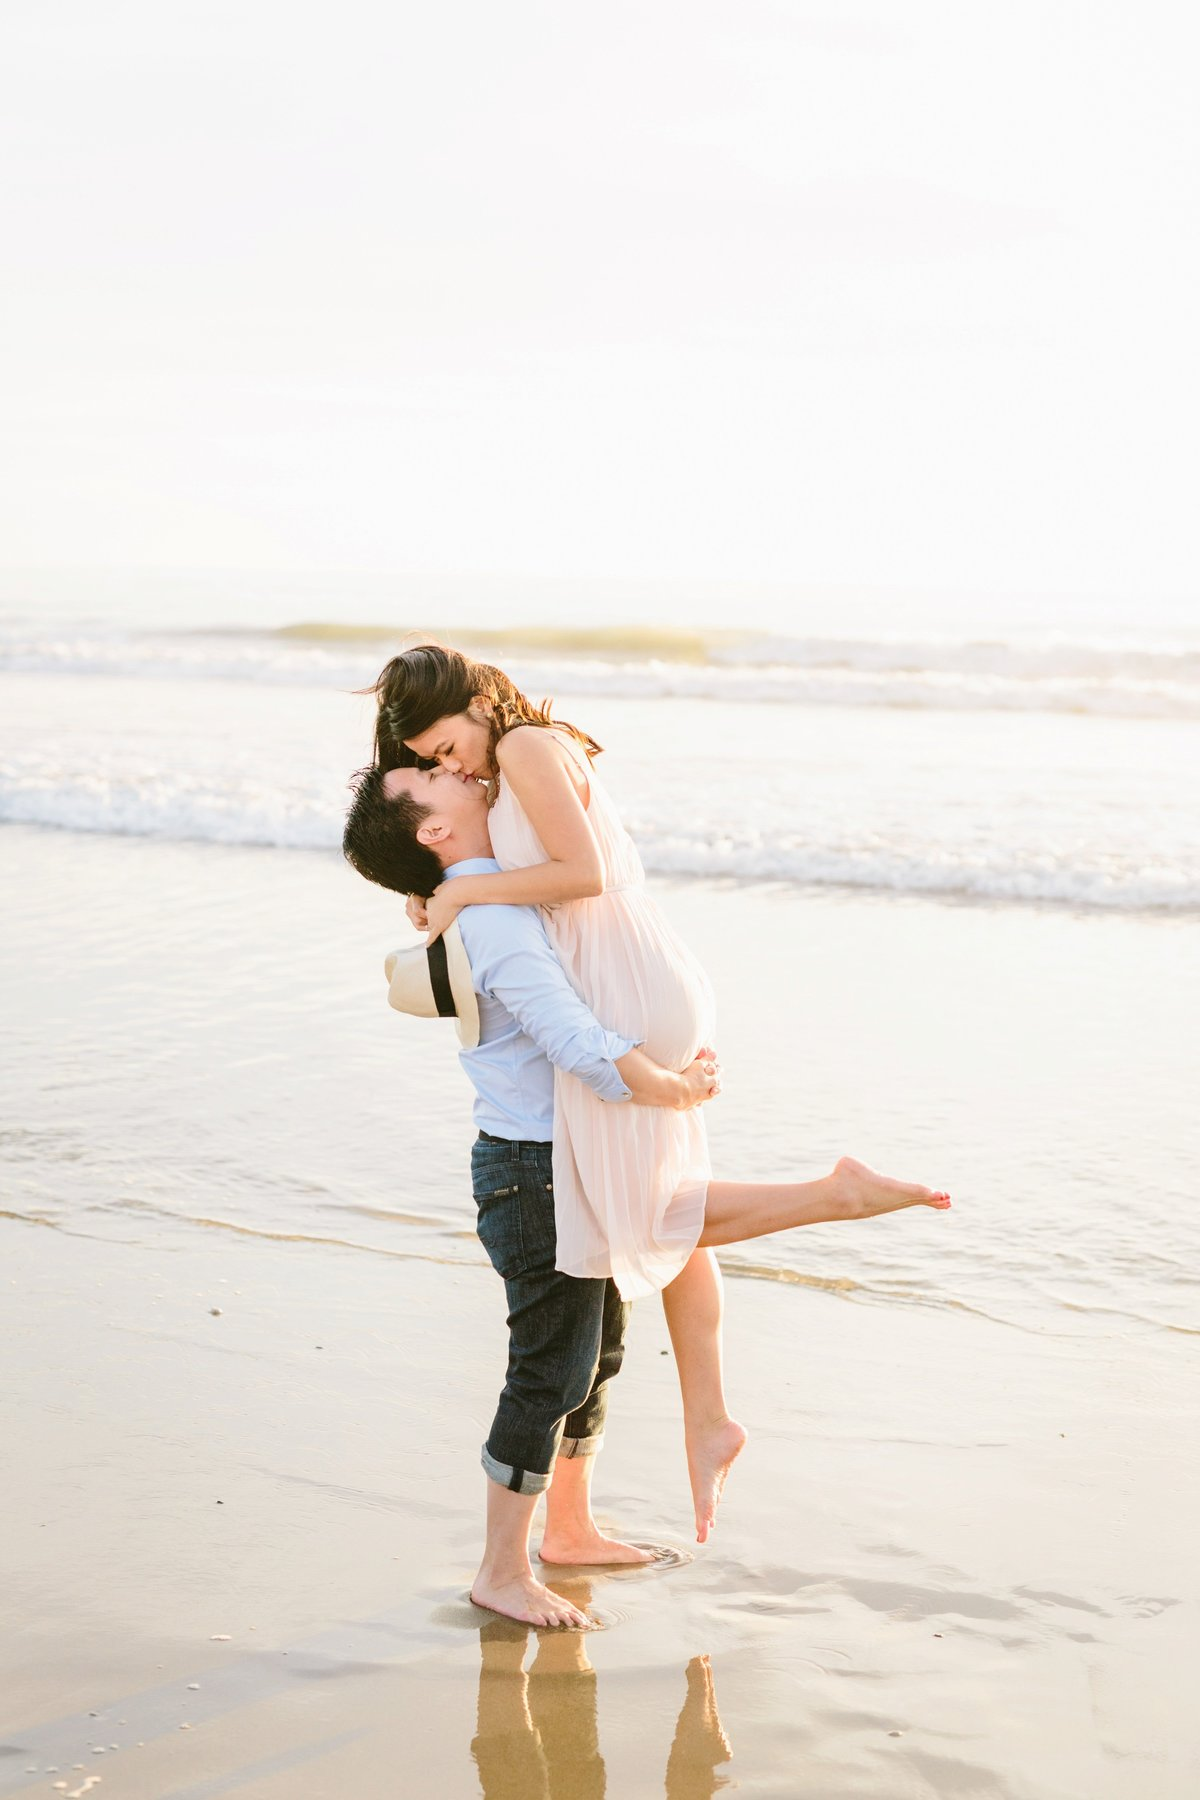 Best California Engagement Photographer-Jodee Debes Photography-23